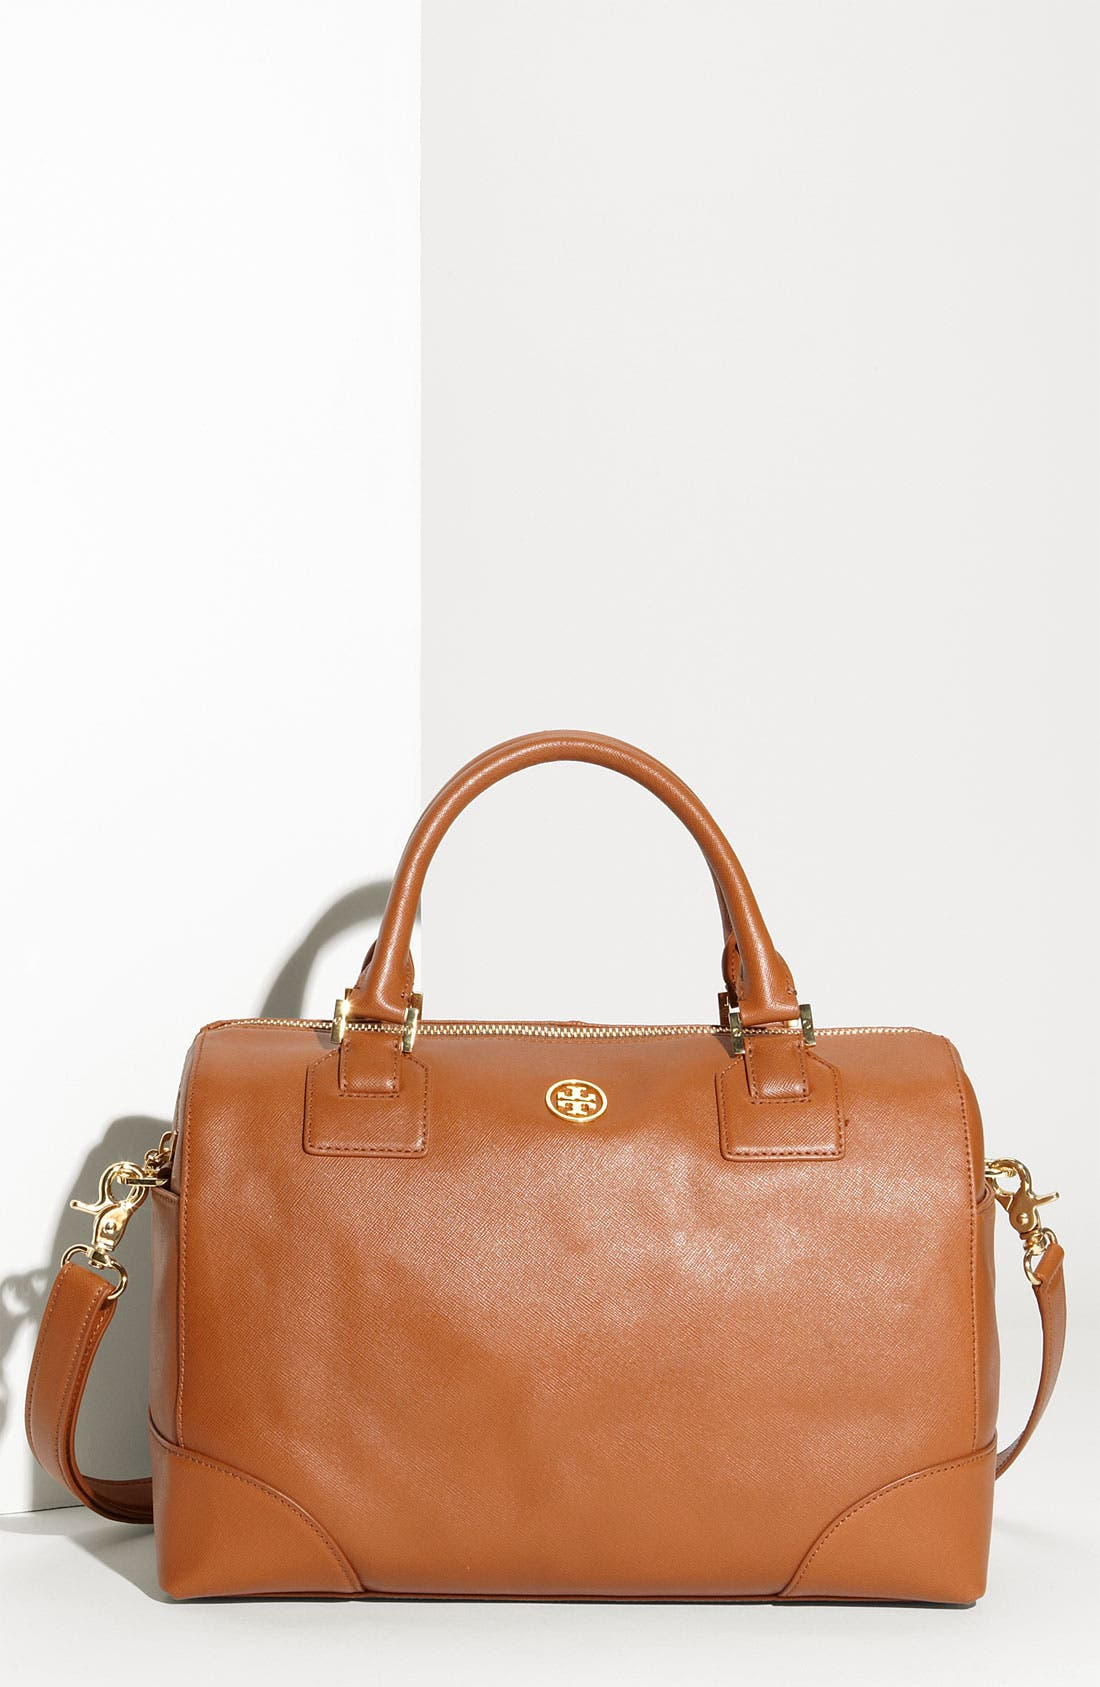 Alternate Image 1 Selected - Tory Burch 'Robinson' Saffiano Satchel